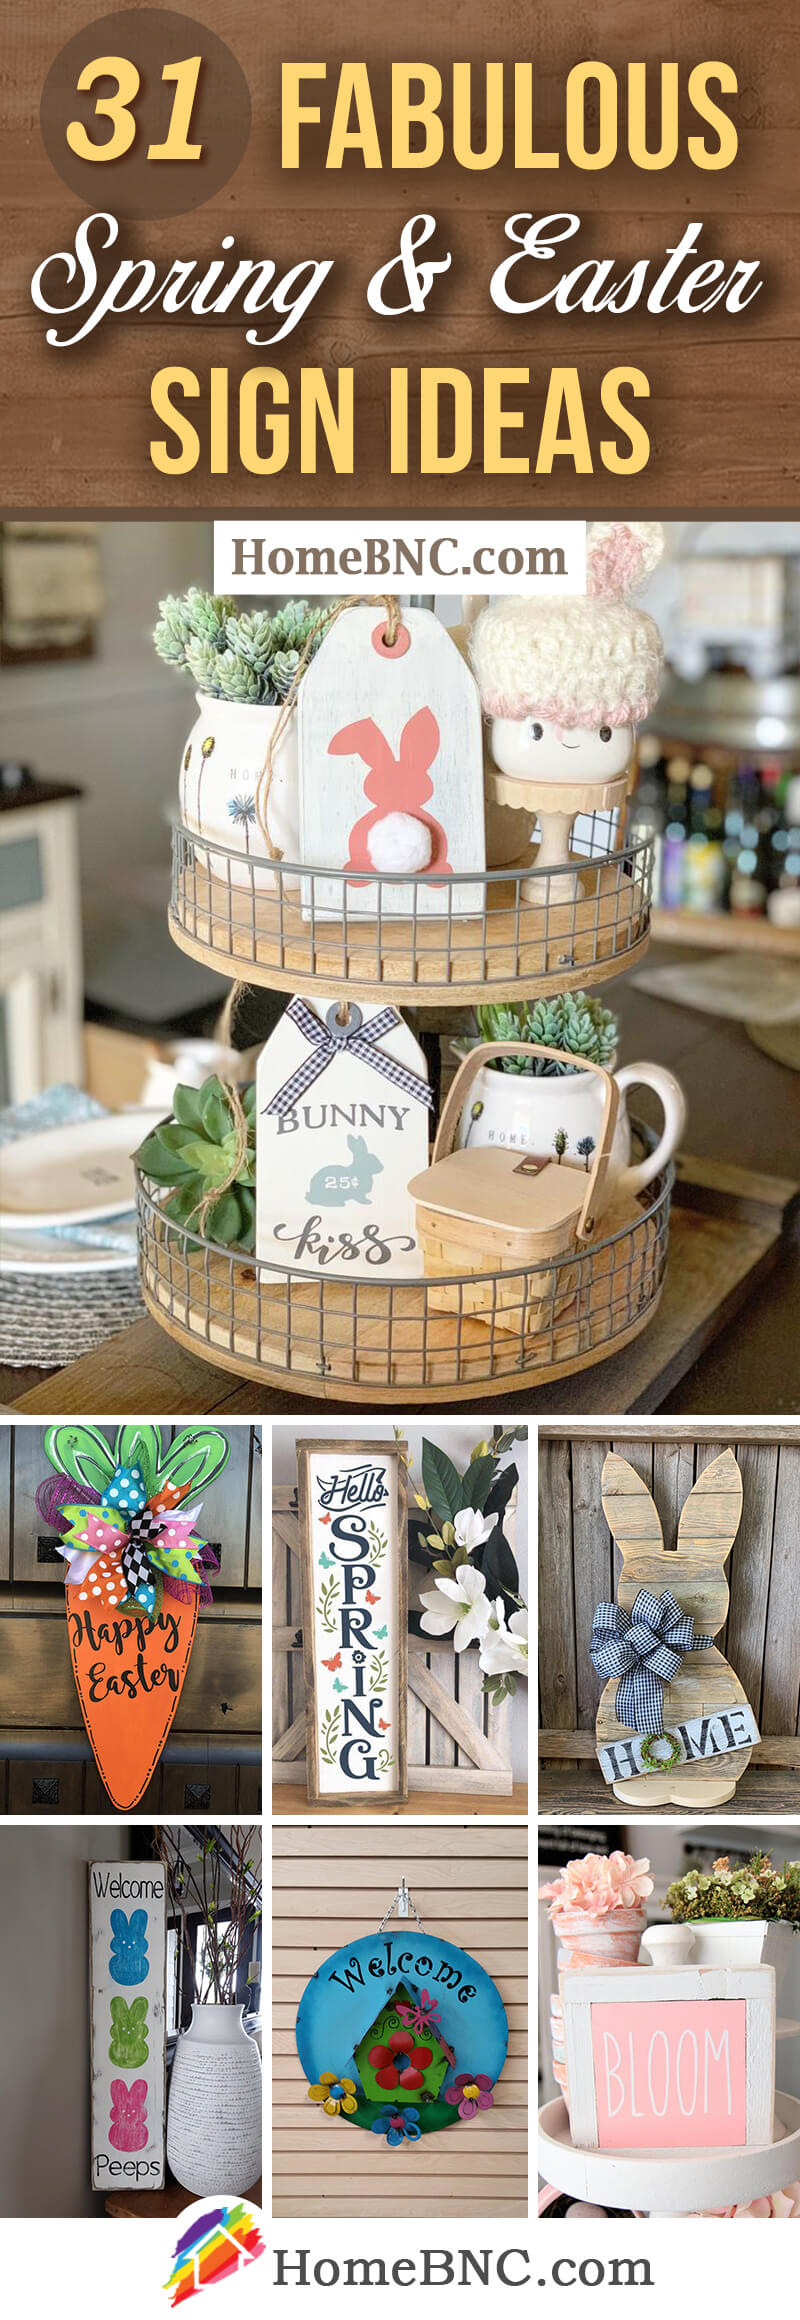 Best Spring and Easter Sign Ideas